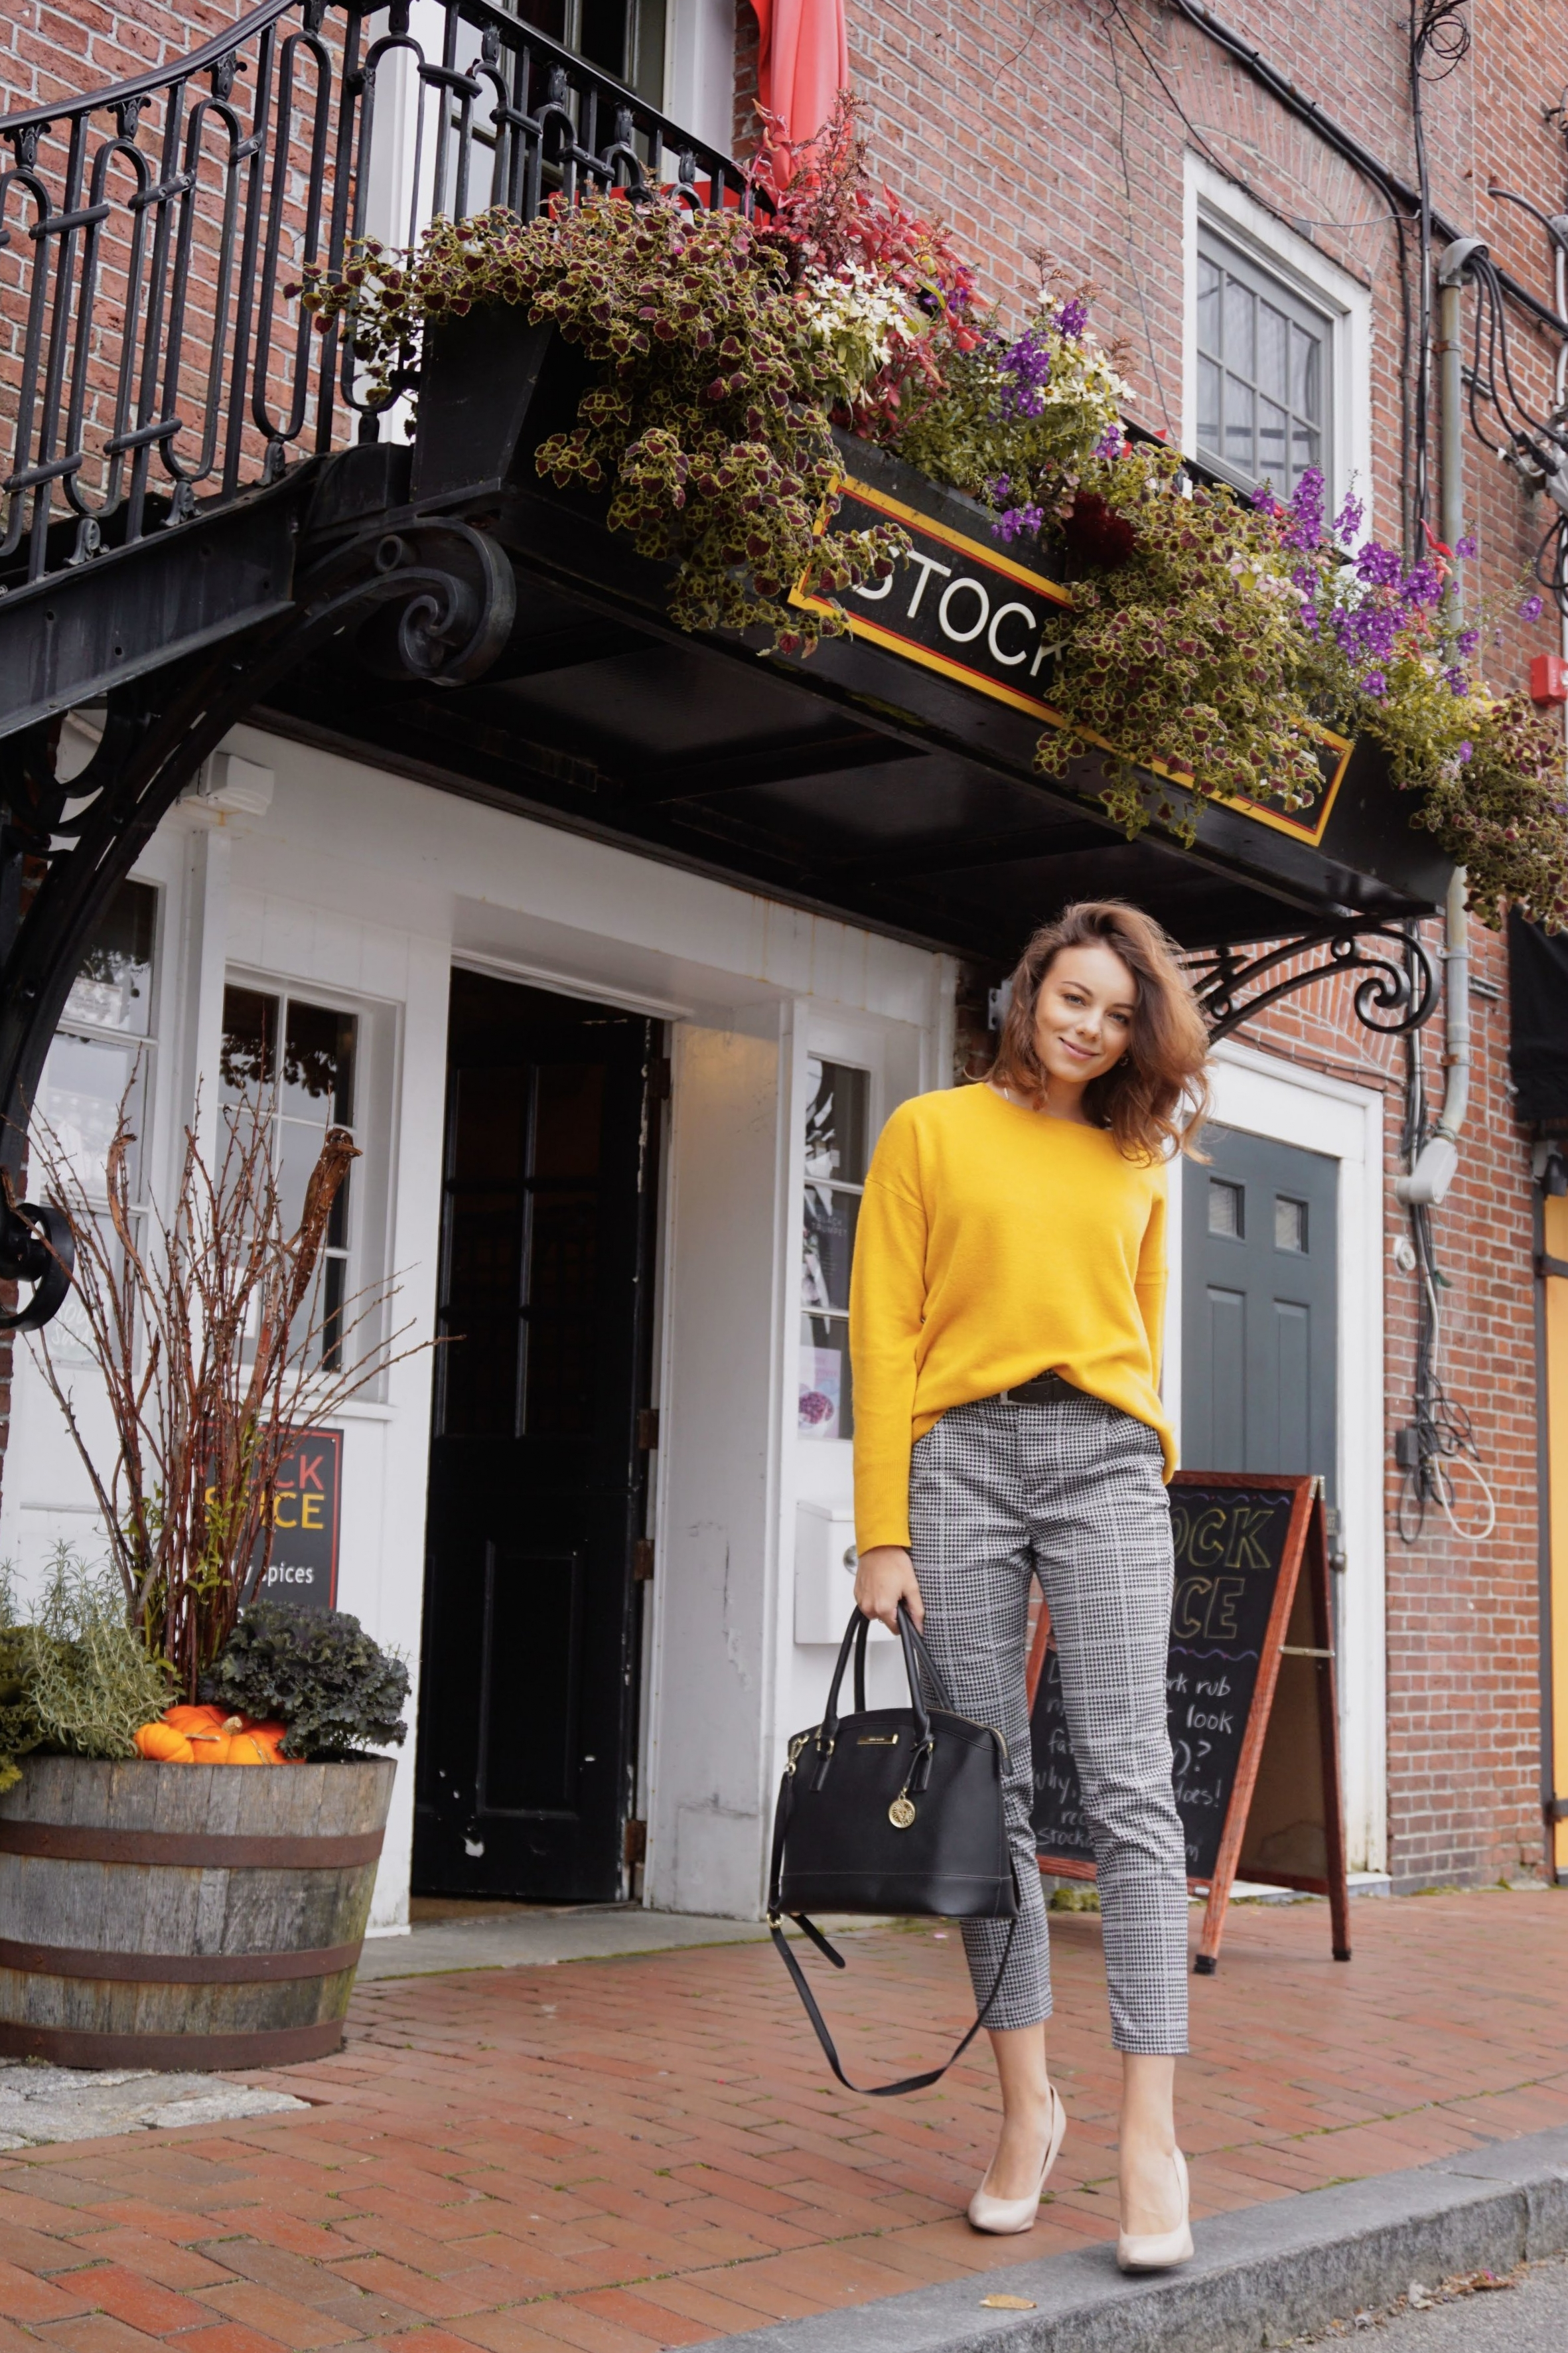 A blogger standing on a street near a brick building wearing an autumn outfit.